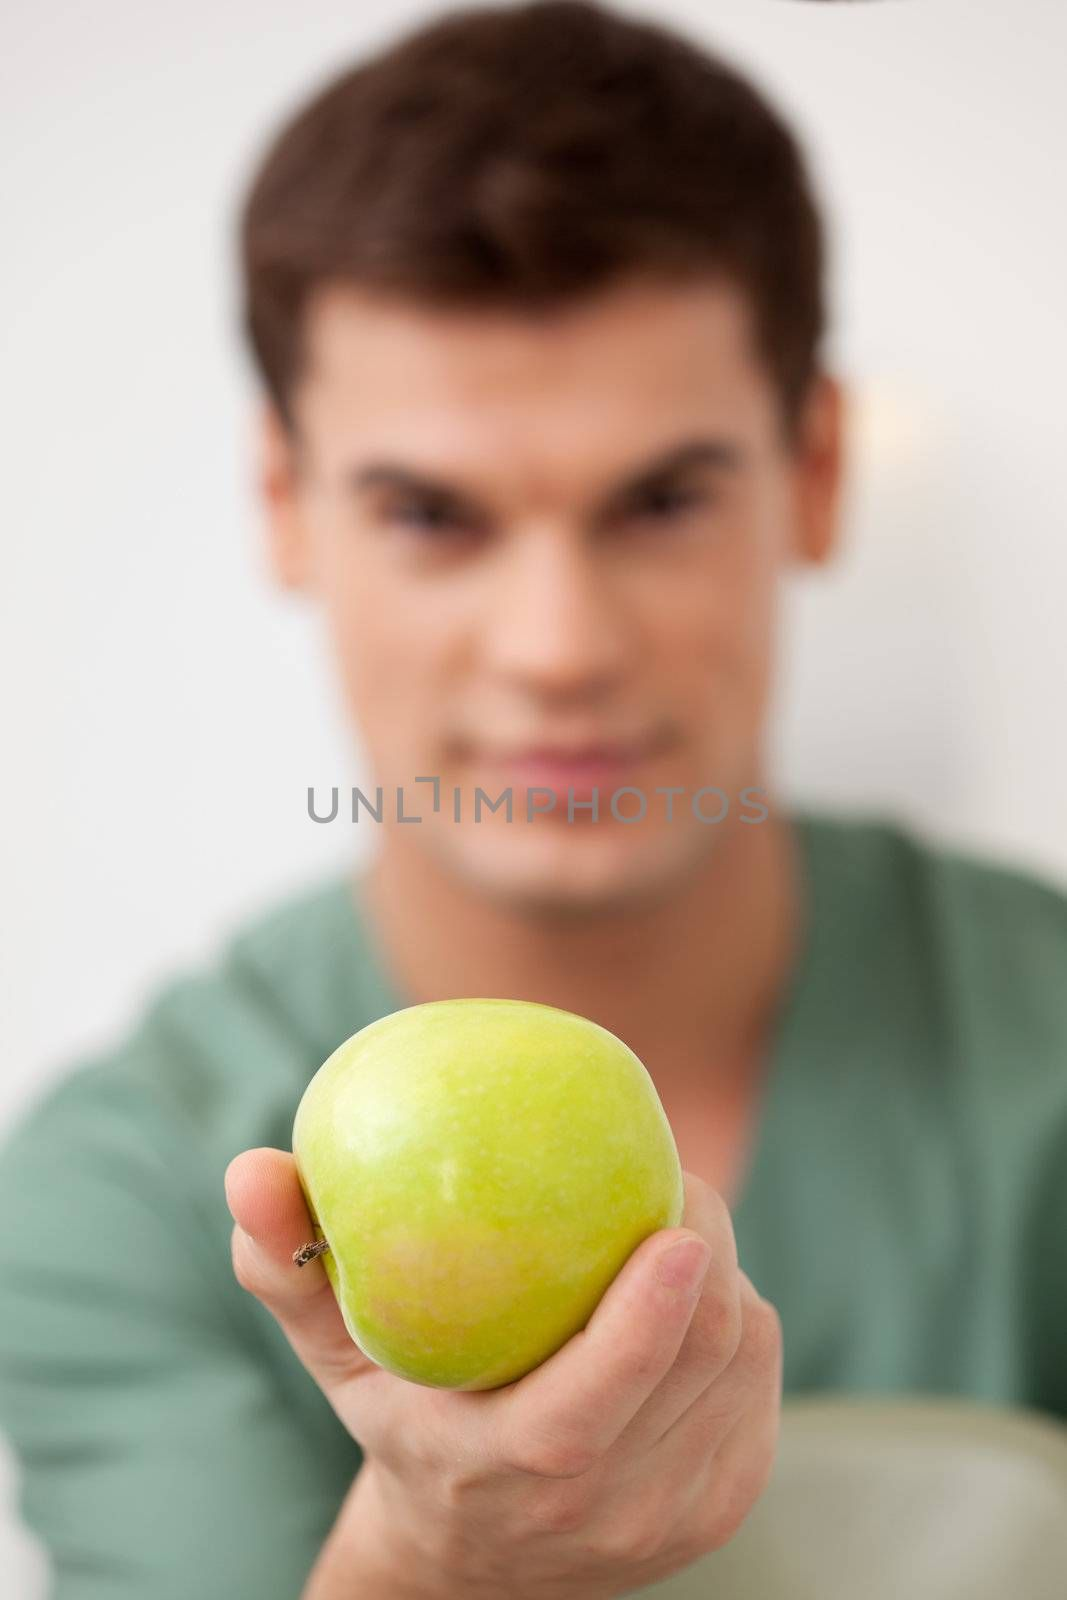 Dentist holding an apple out to the viewer, shallow depth of field, focus on apple